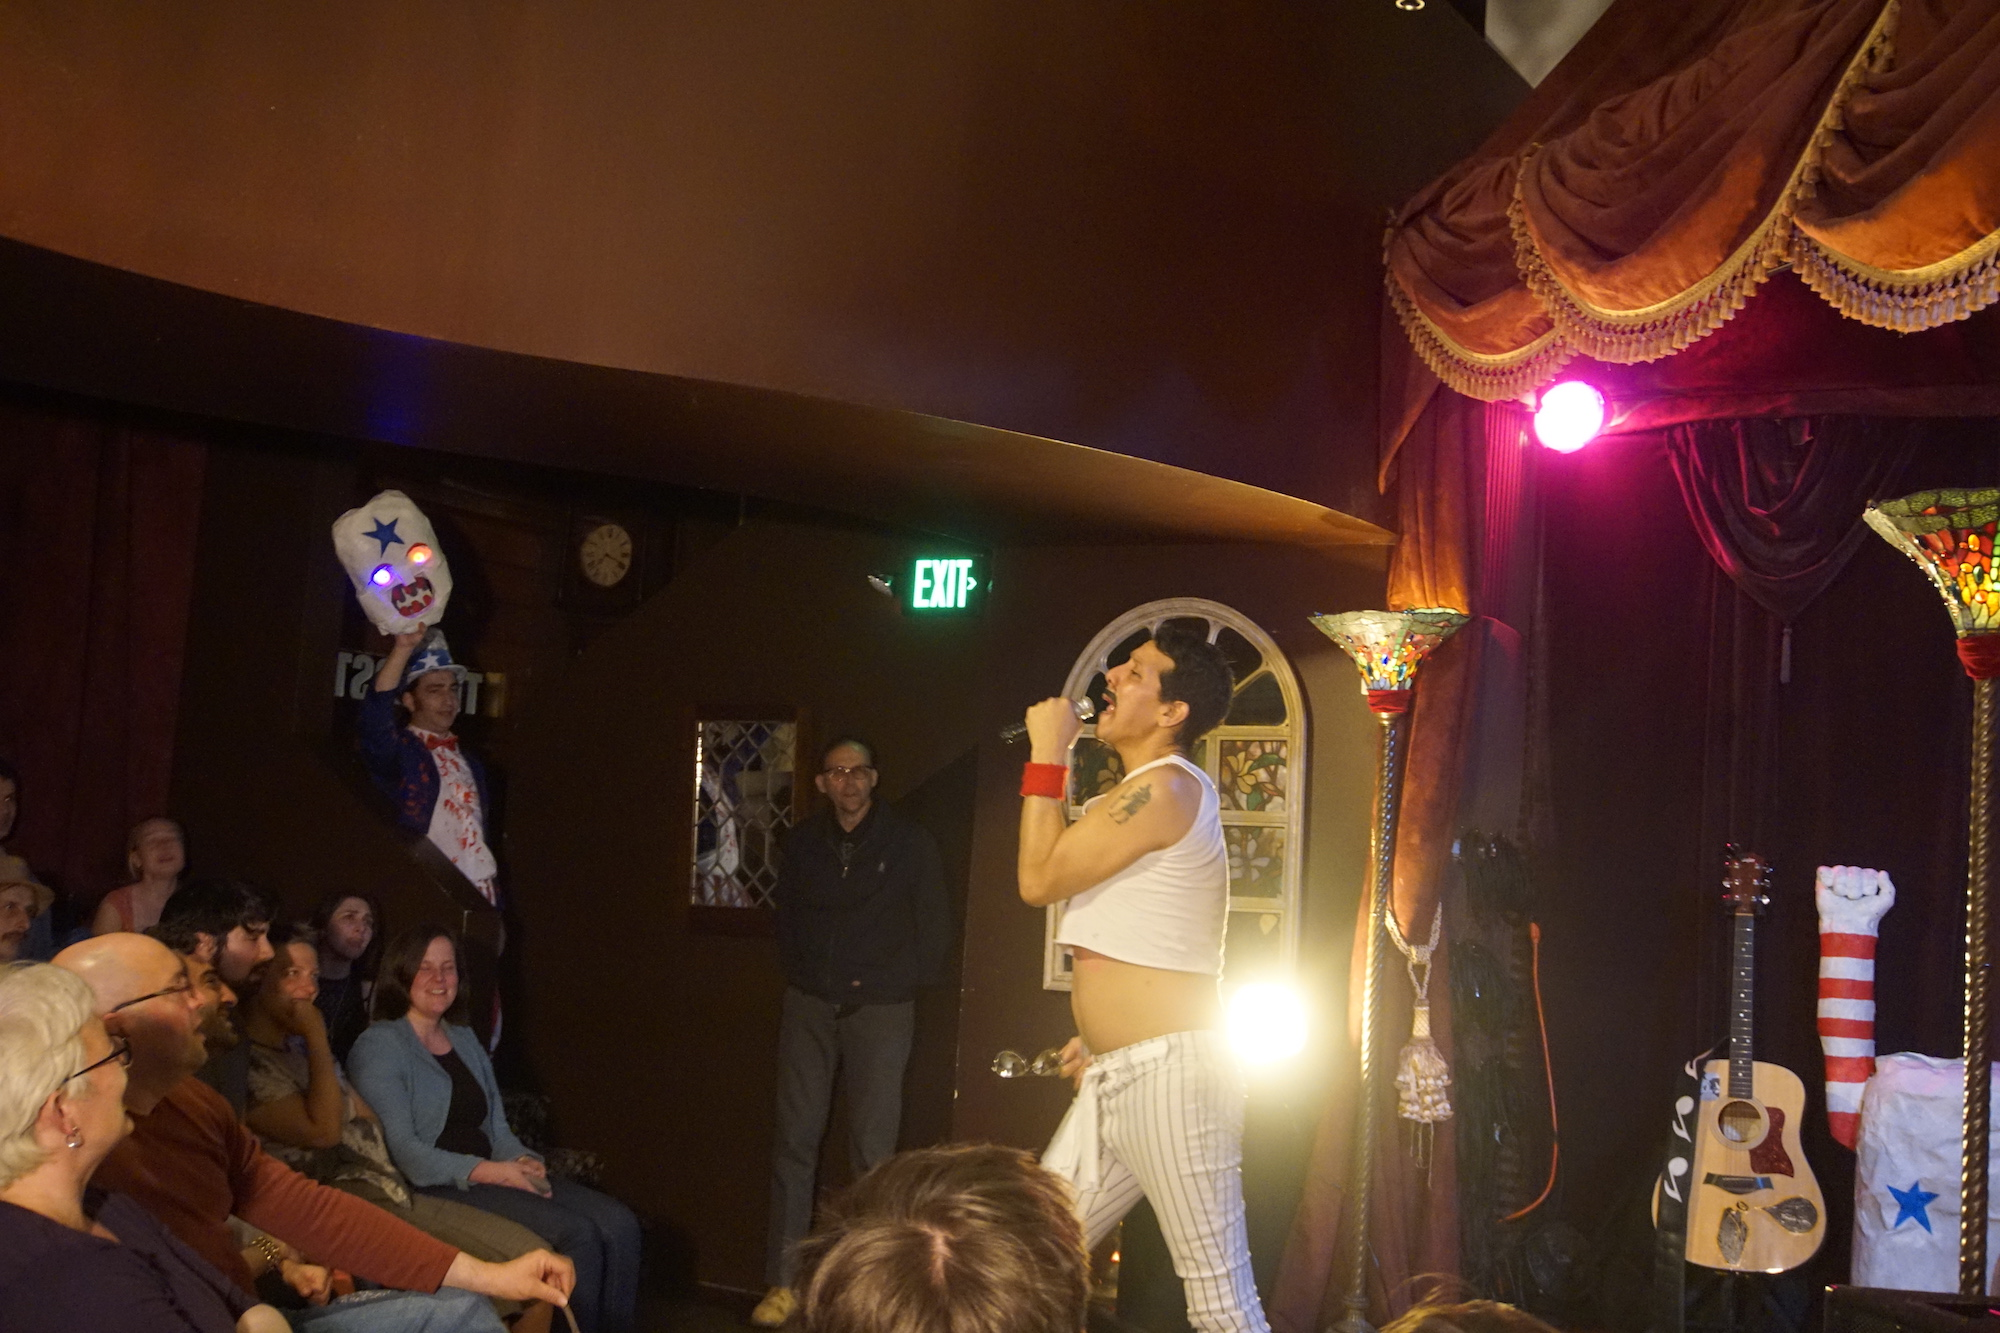 Performer Peter Griggs dressed like Freddie Mercury in a white crop top, sings into a microphone in front of a smiling crowd.